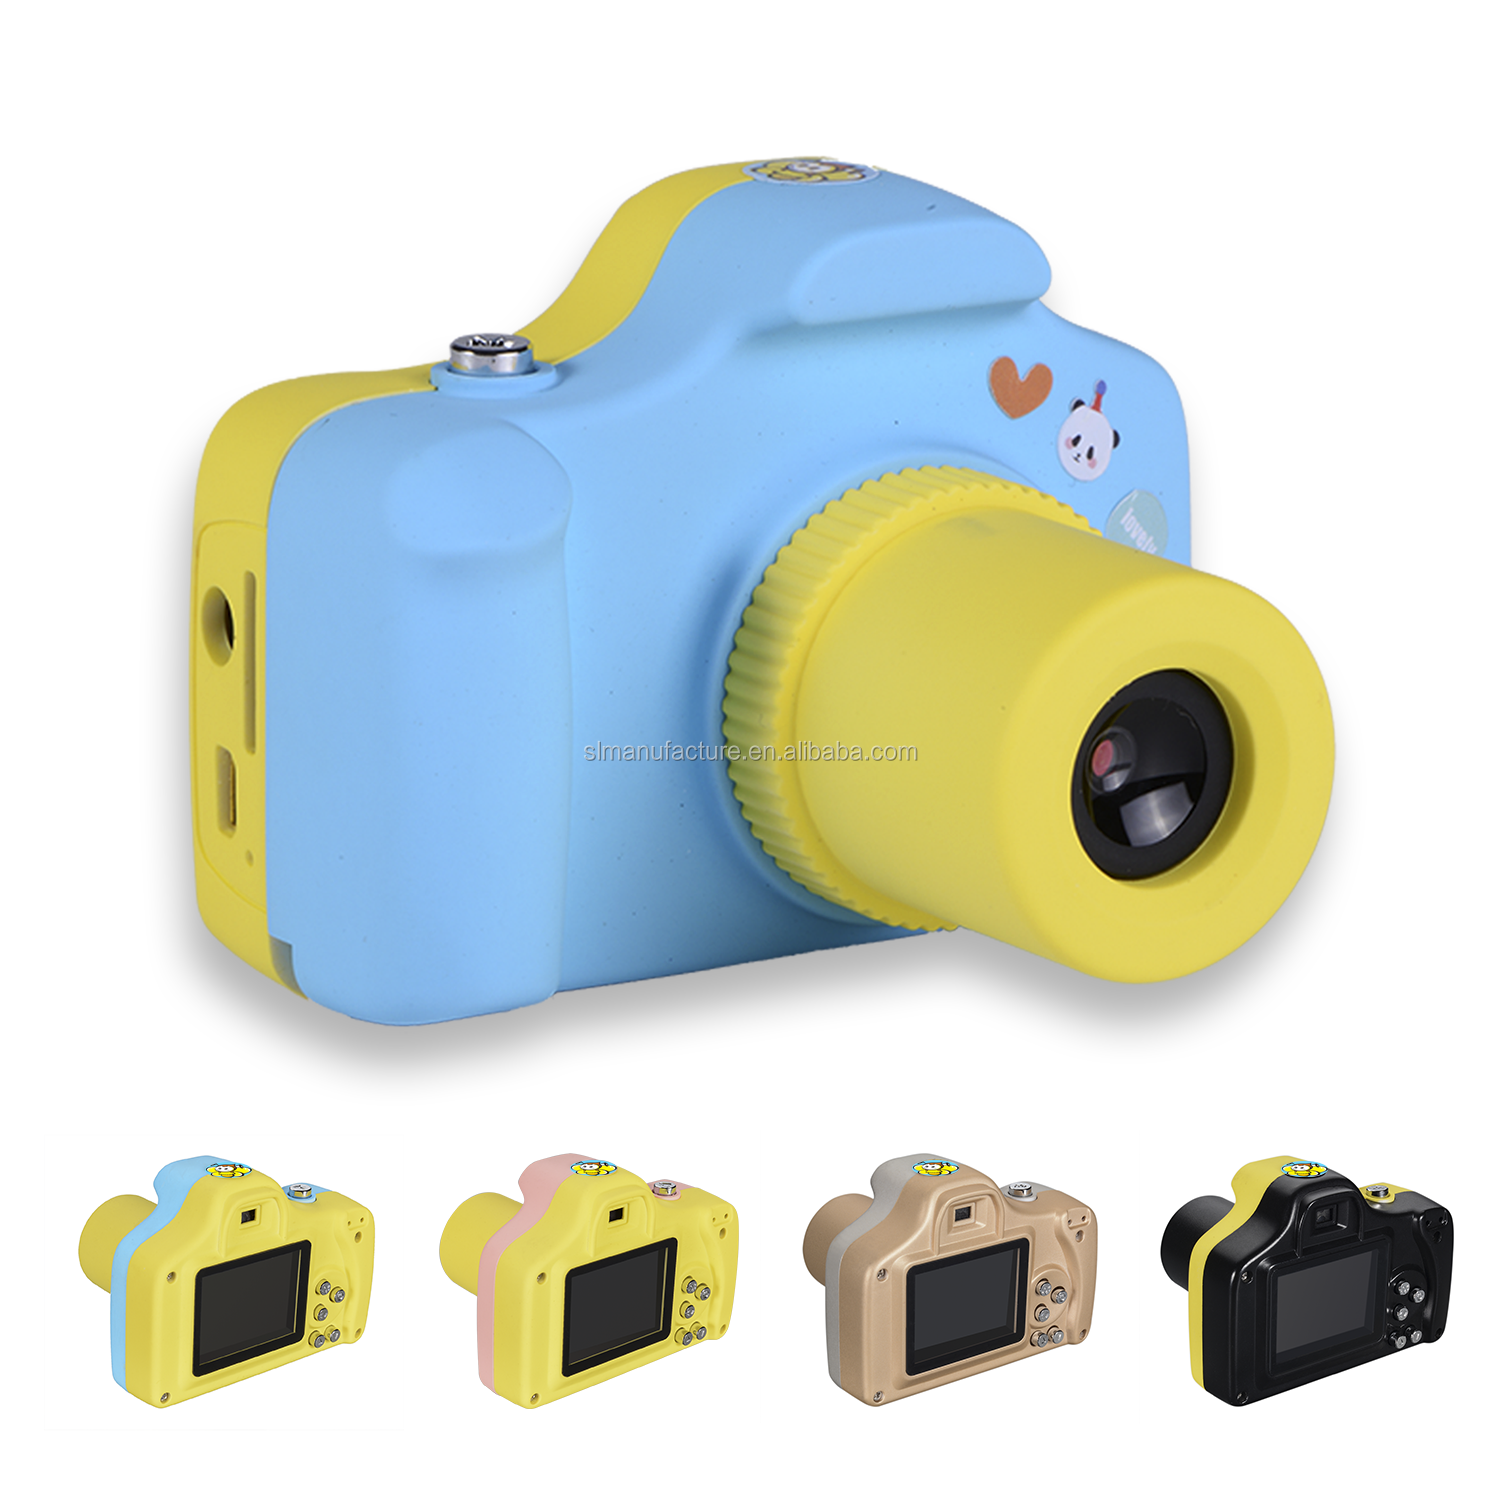 2018 Best Gift easily control Action Digital Camera for <strong>Kids</strong>